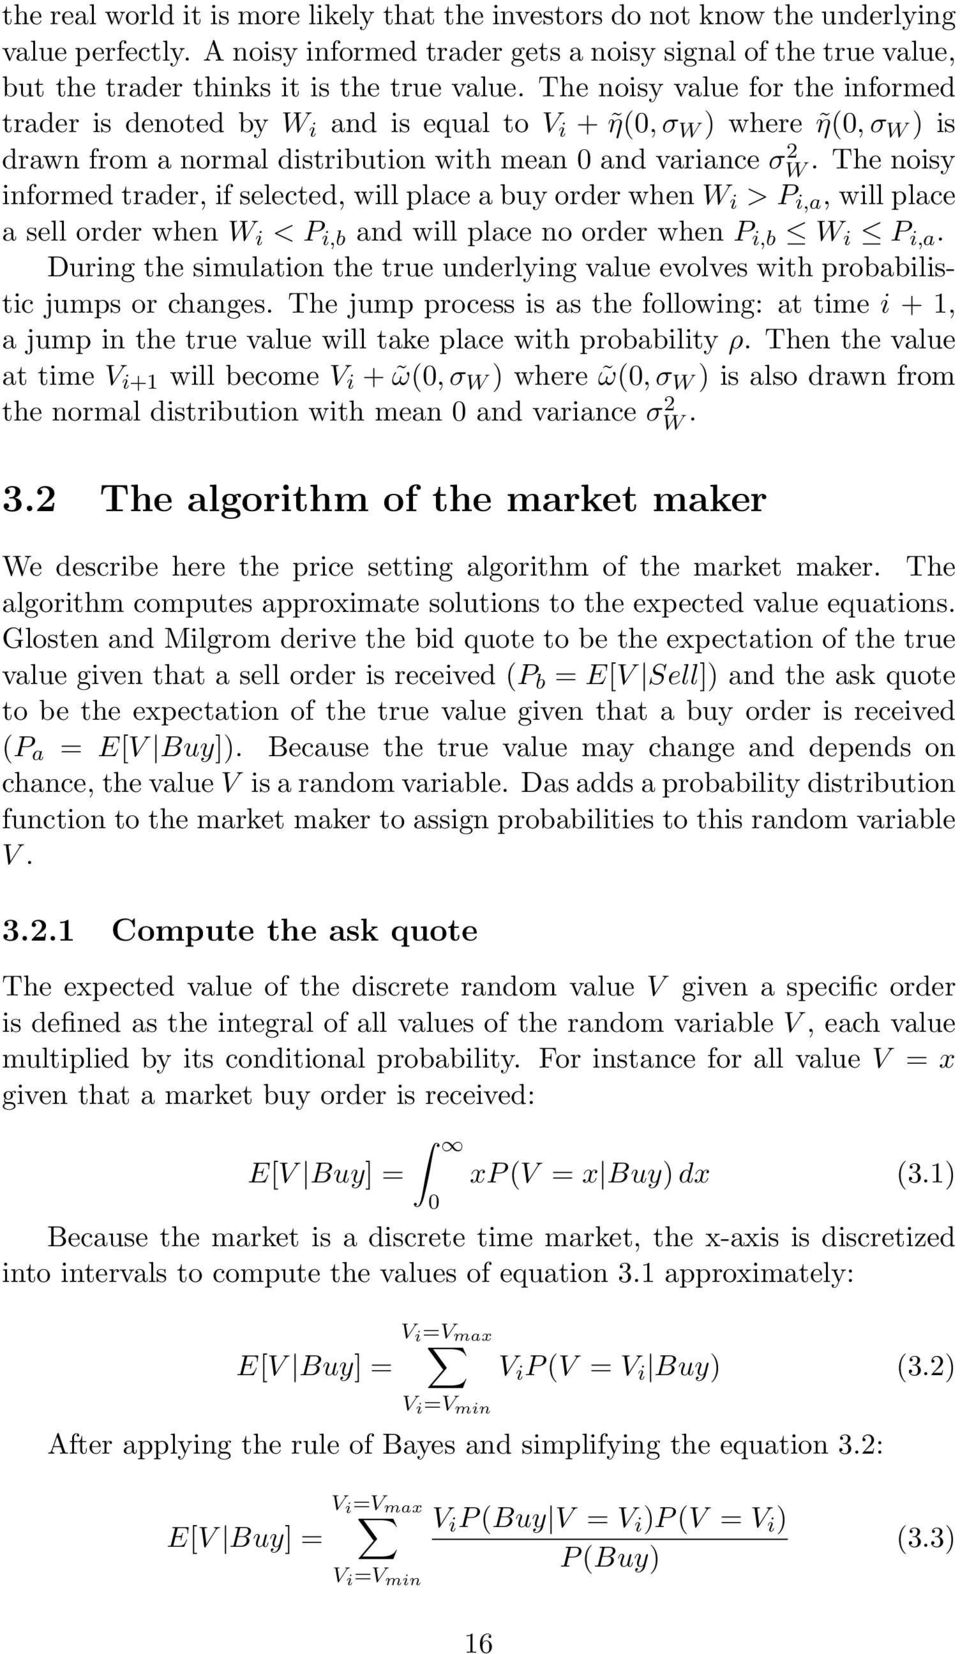 The noisy value for the informed trader is denoted by W i and is equal to V i + η(0, σ W ) where η(0, σ W ) is drawn from a normal distribution with mean 0 and variance σw 2.